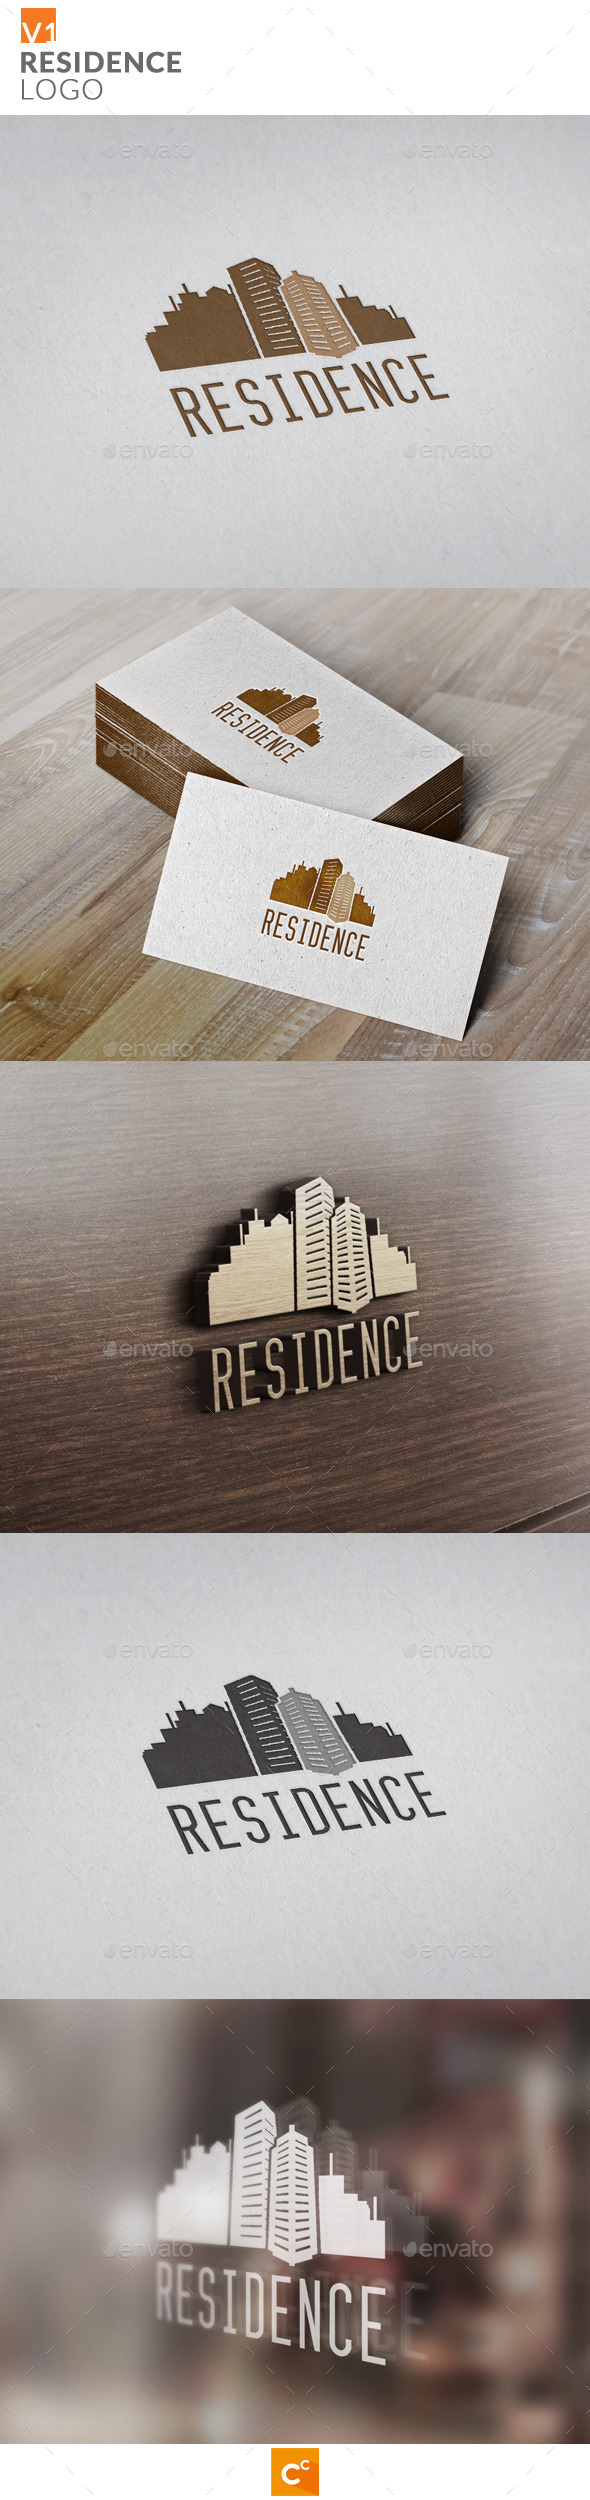 Residence Logo - Buildings Logo Templates